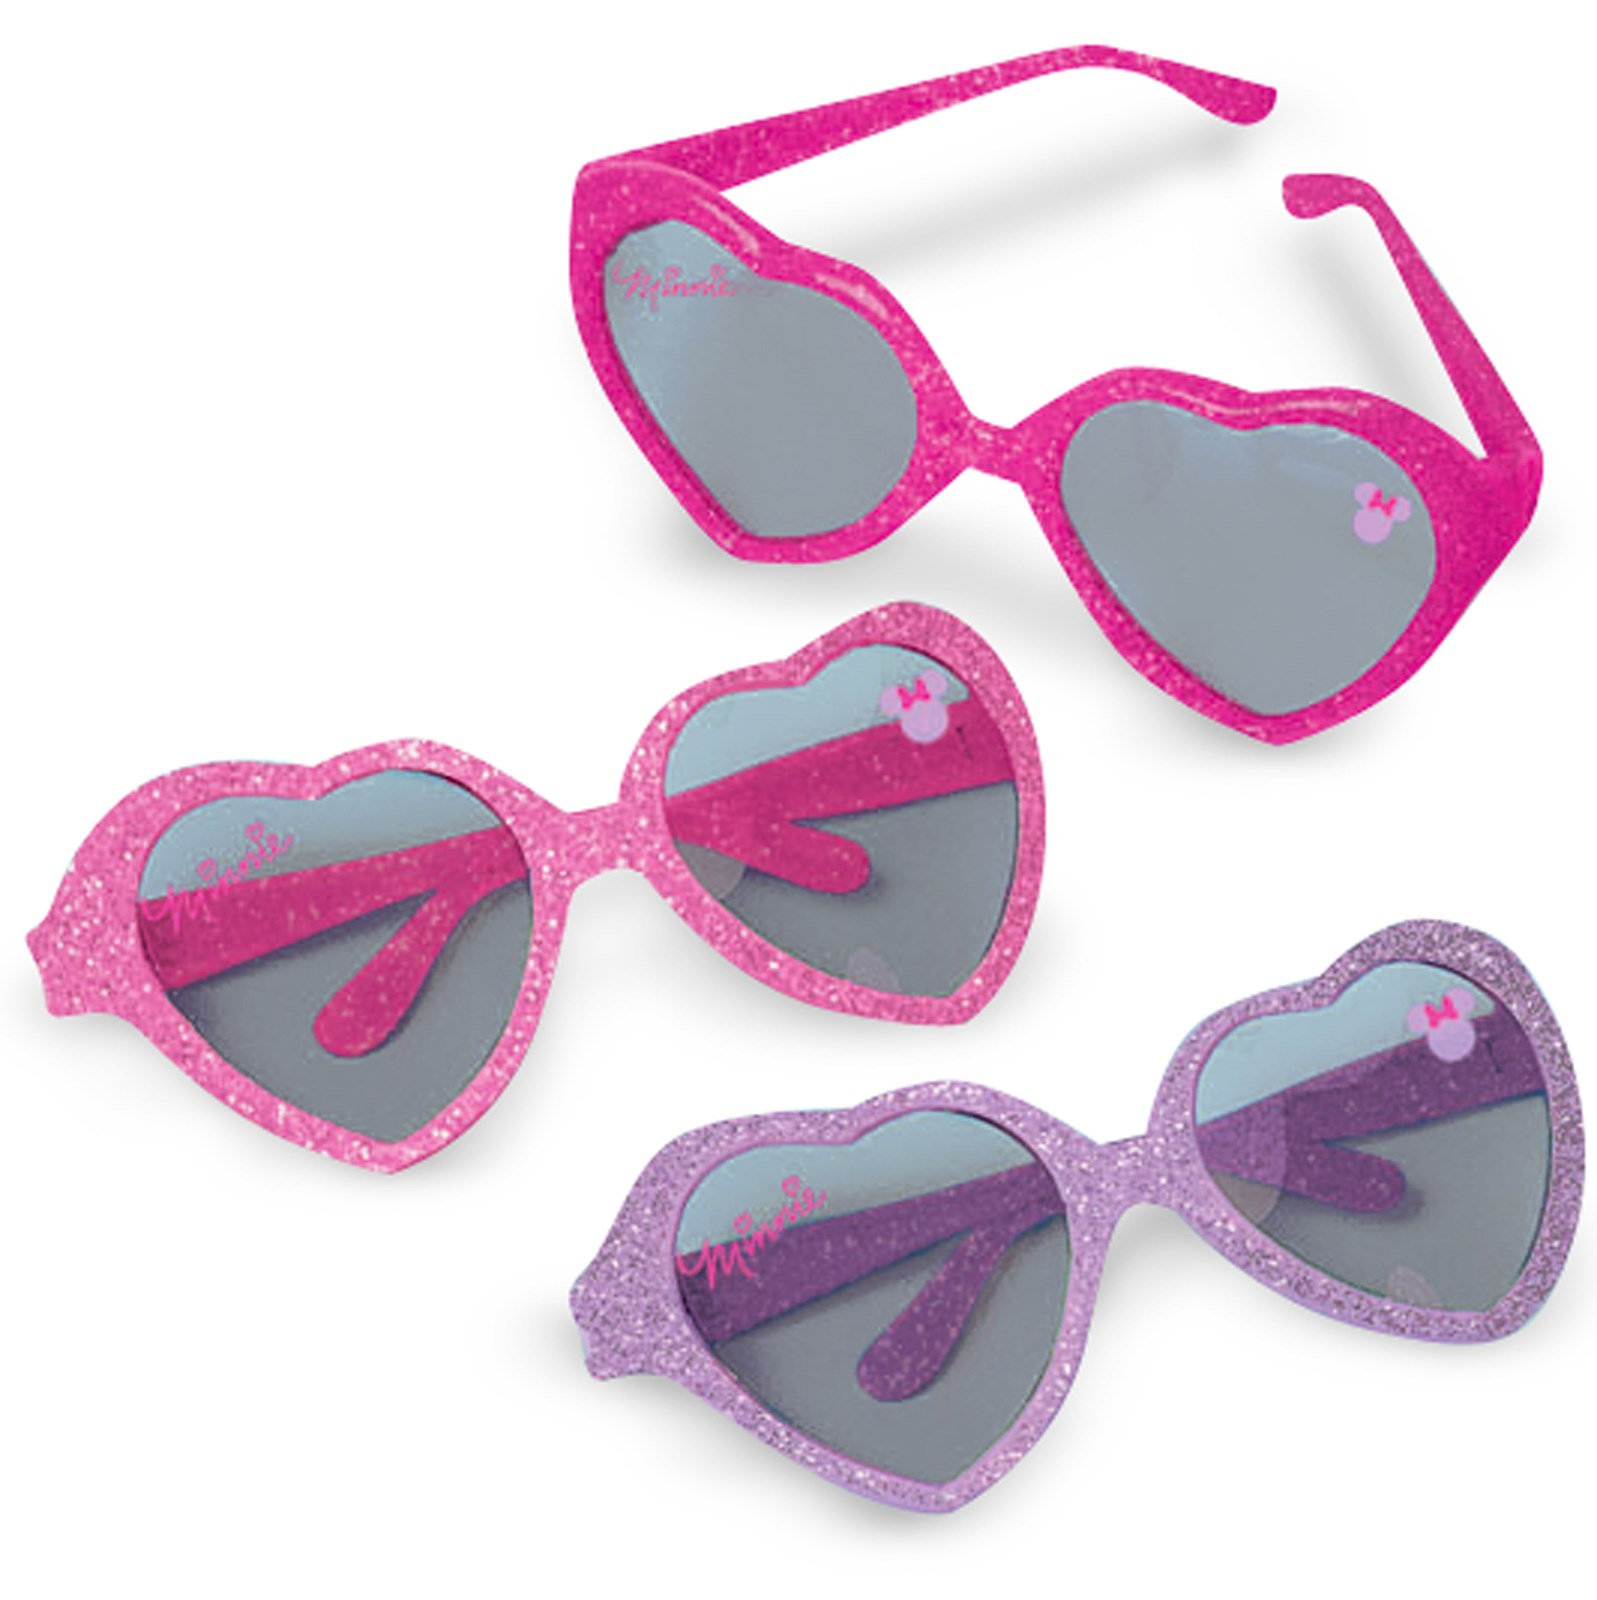 Disney Minnie Mouse Glitter Heart Sunglasses